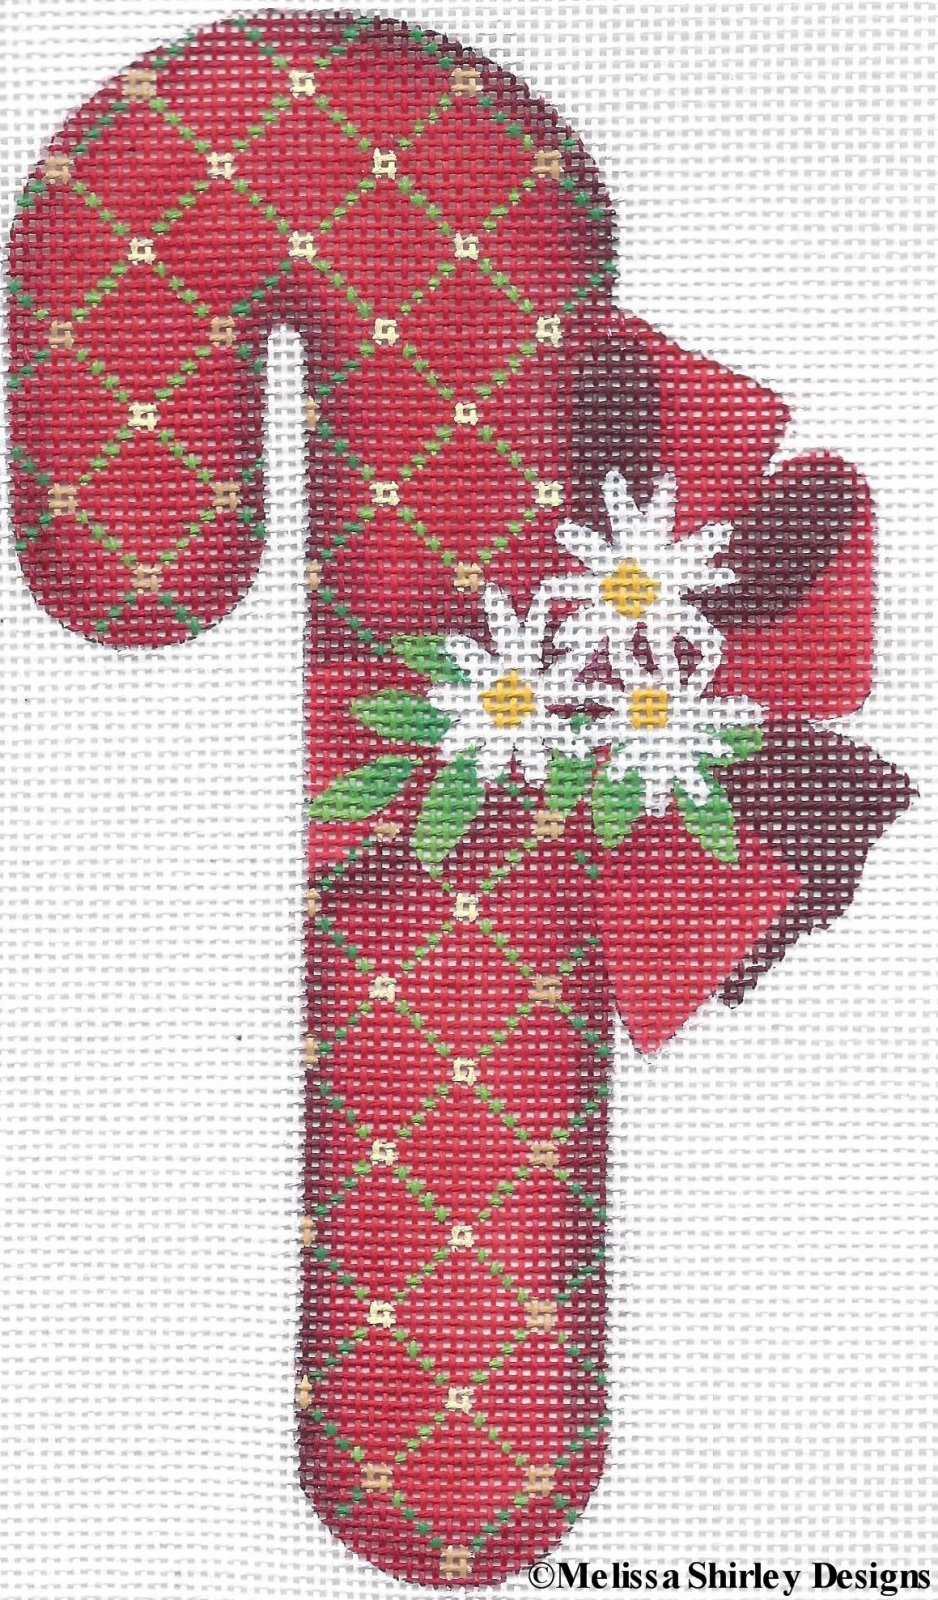 2109H - RED TRELLIS CANDY CANE